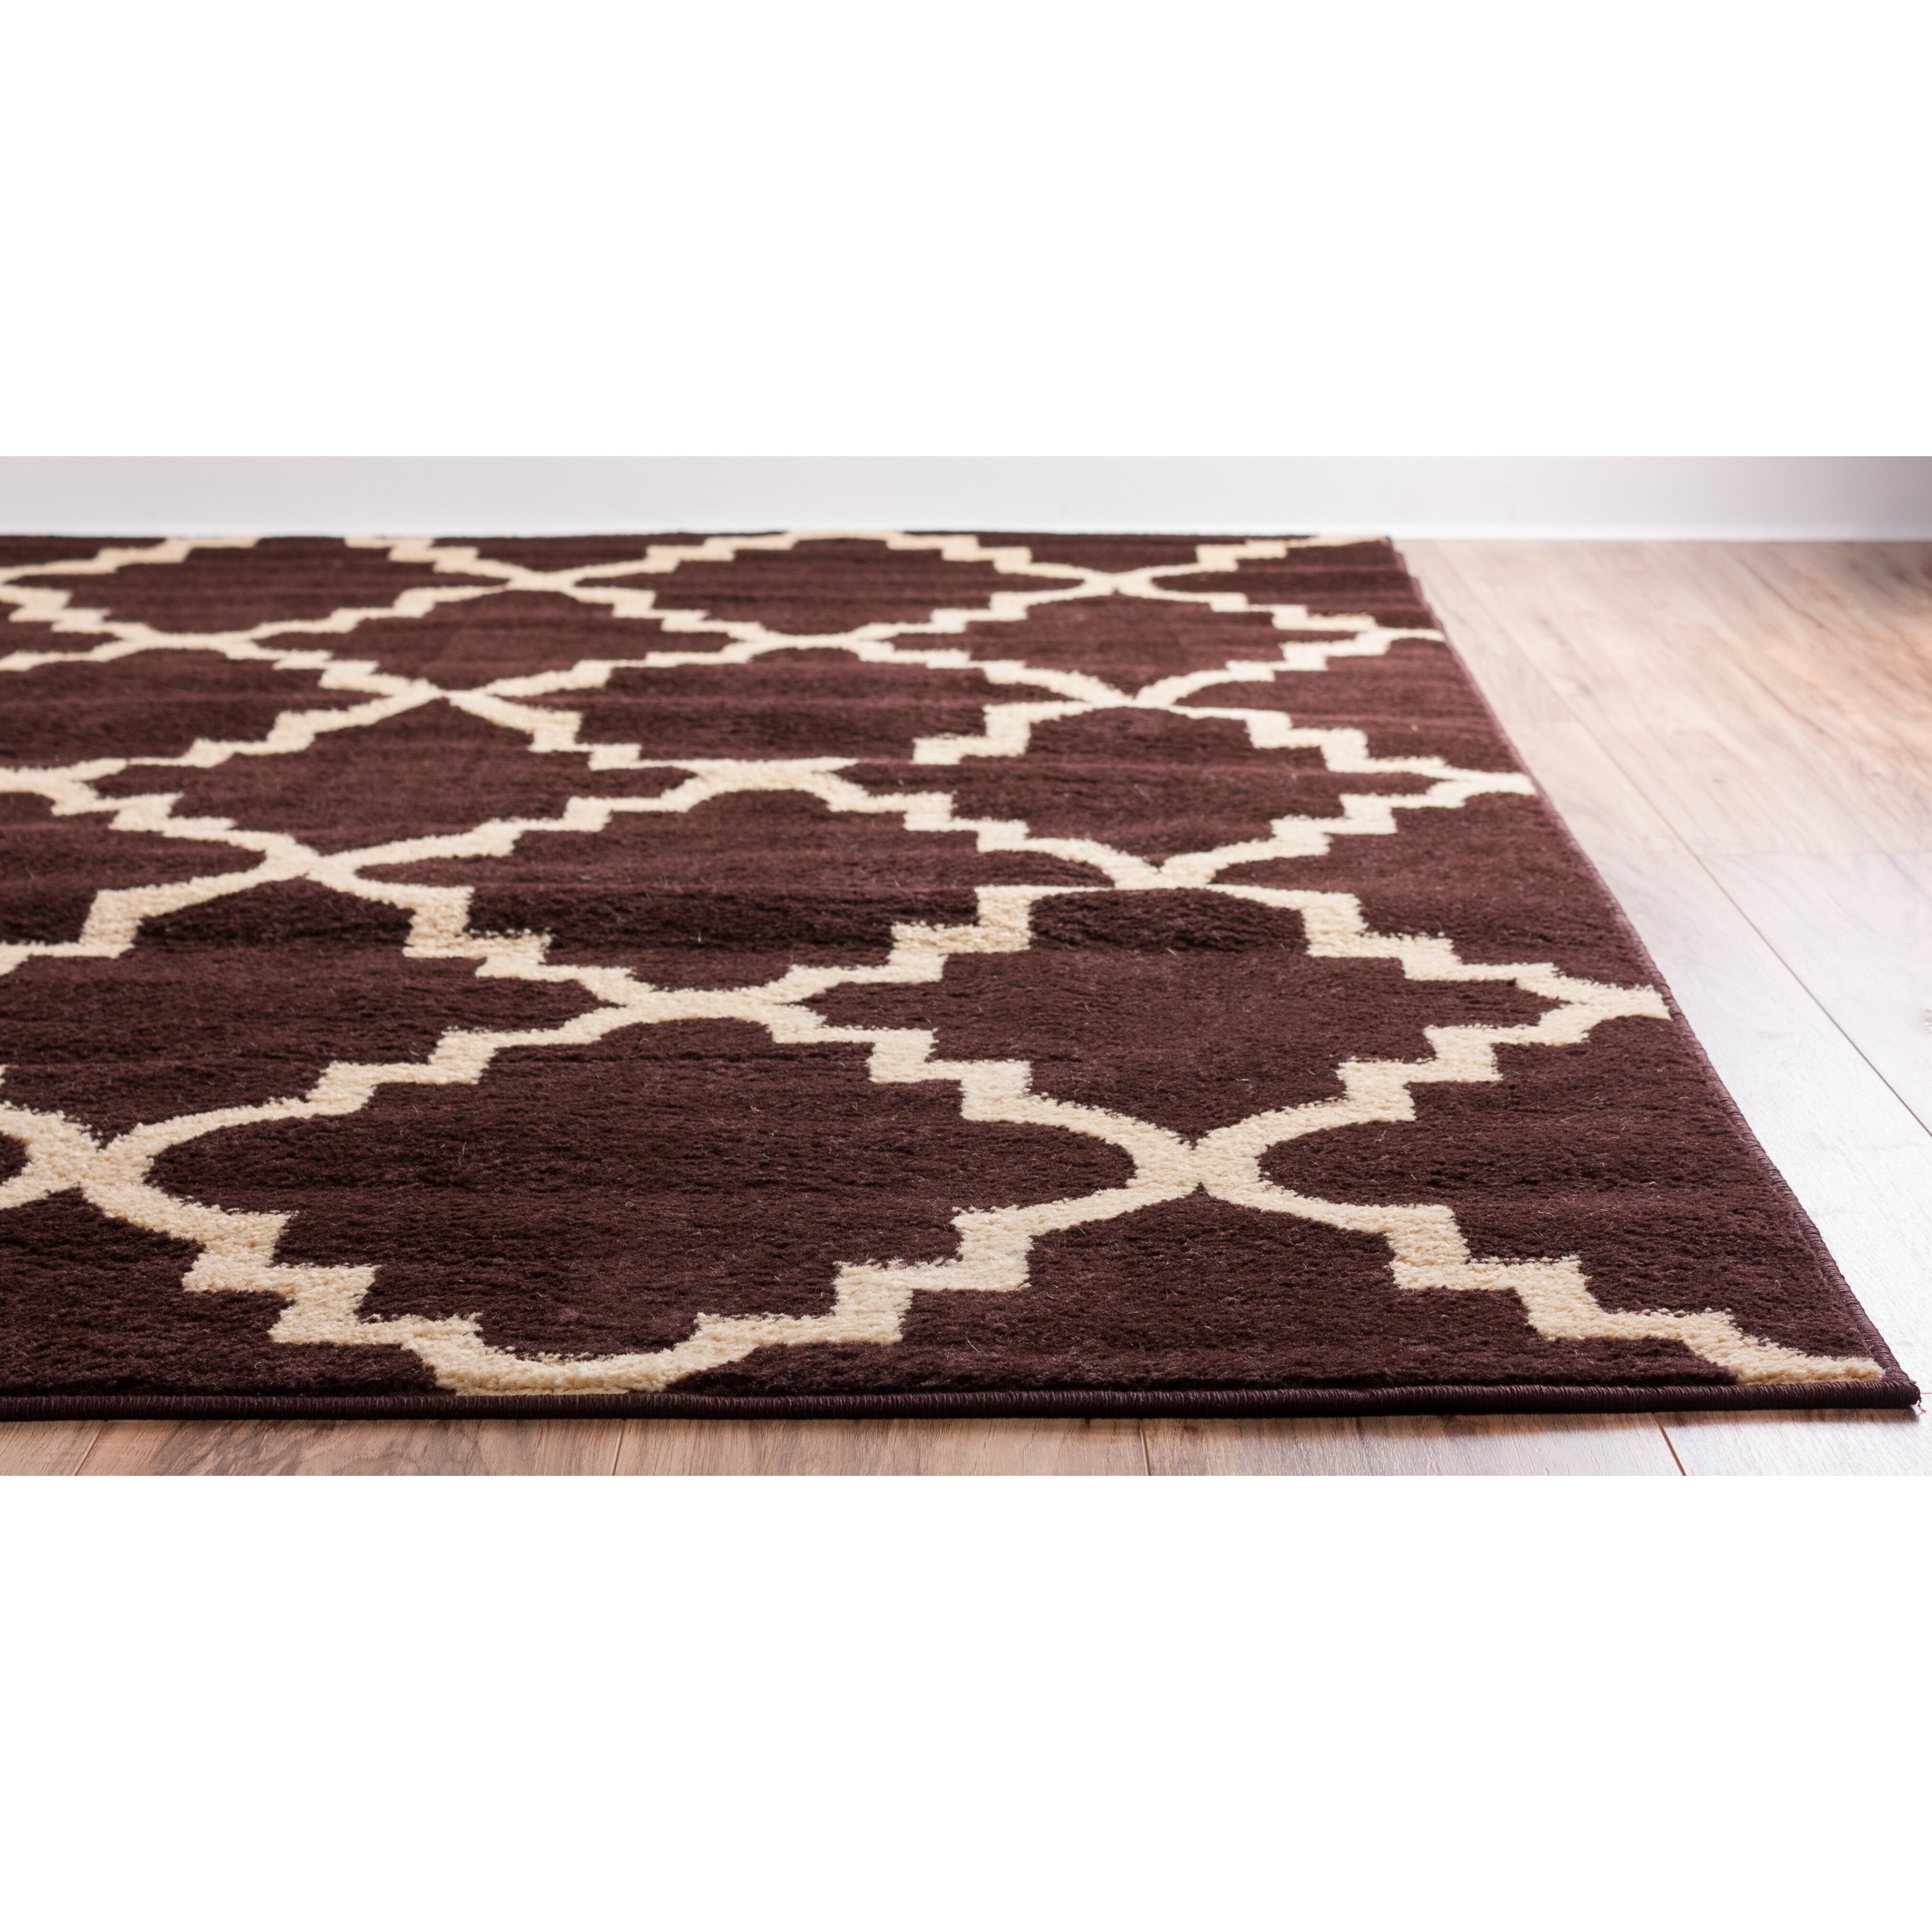 Well woven royal court 3 piece brown area rug set for Two rugs in one room